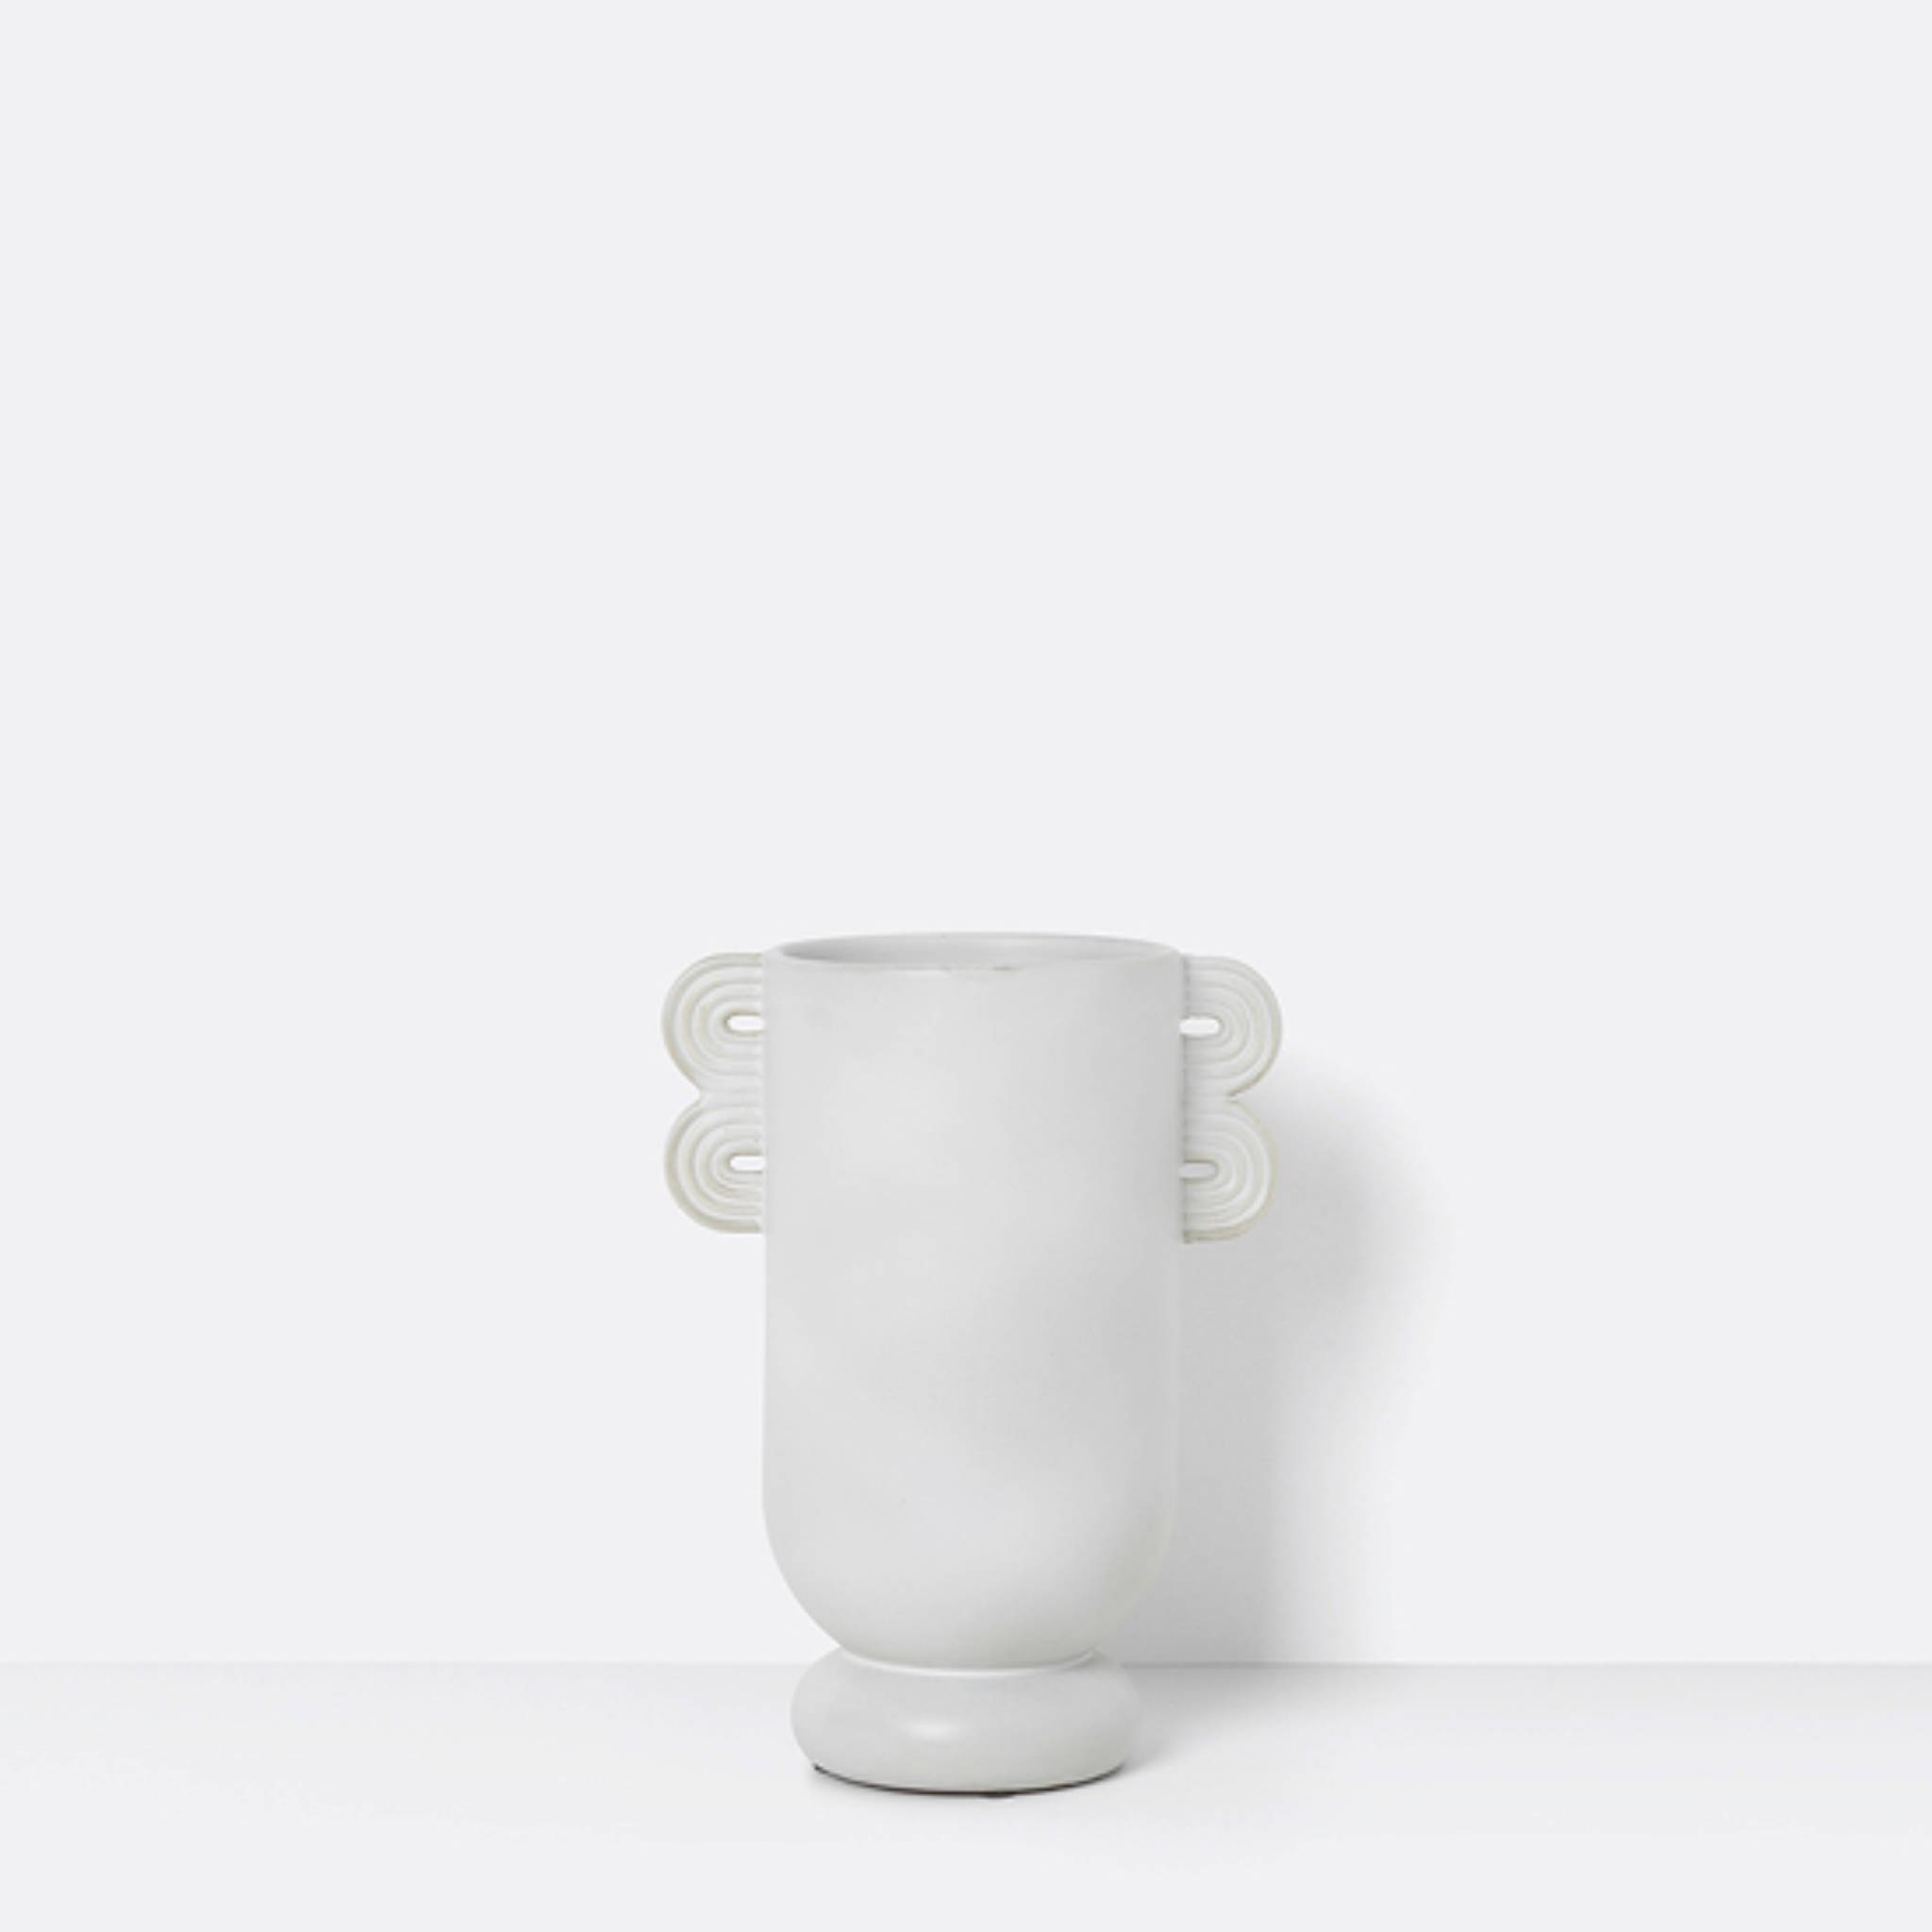 Ferm Living Muses Vase- Ania